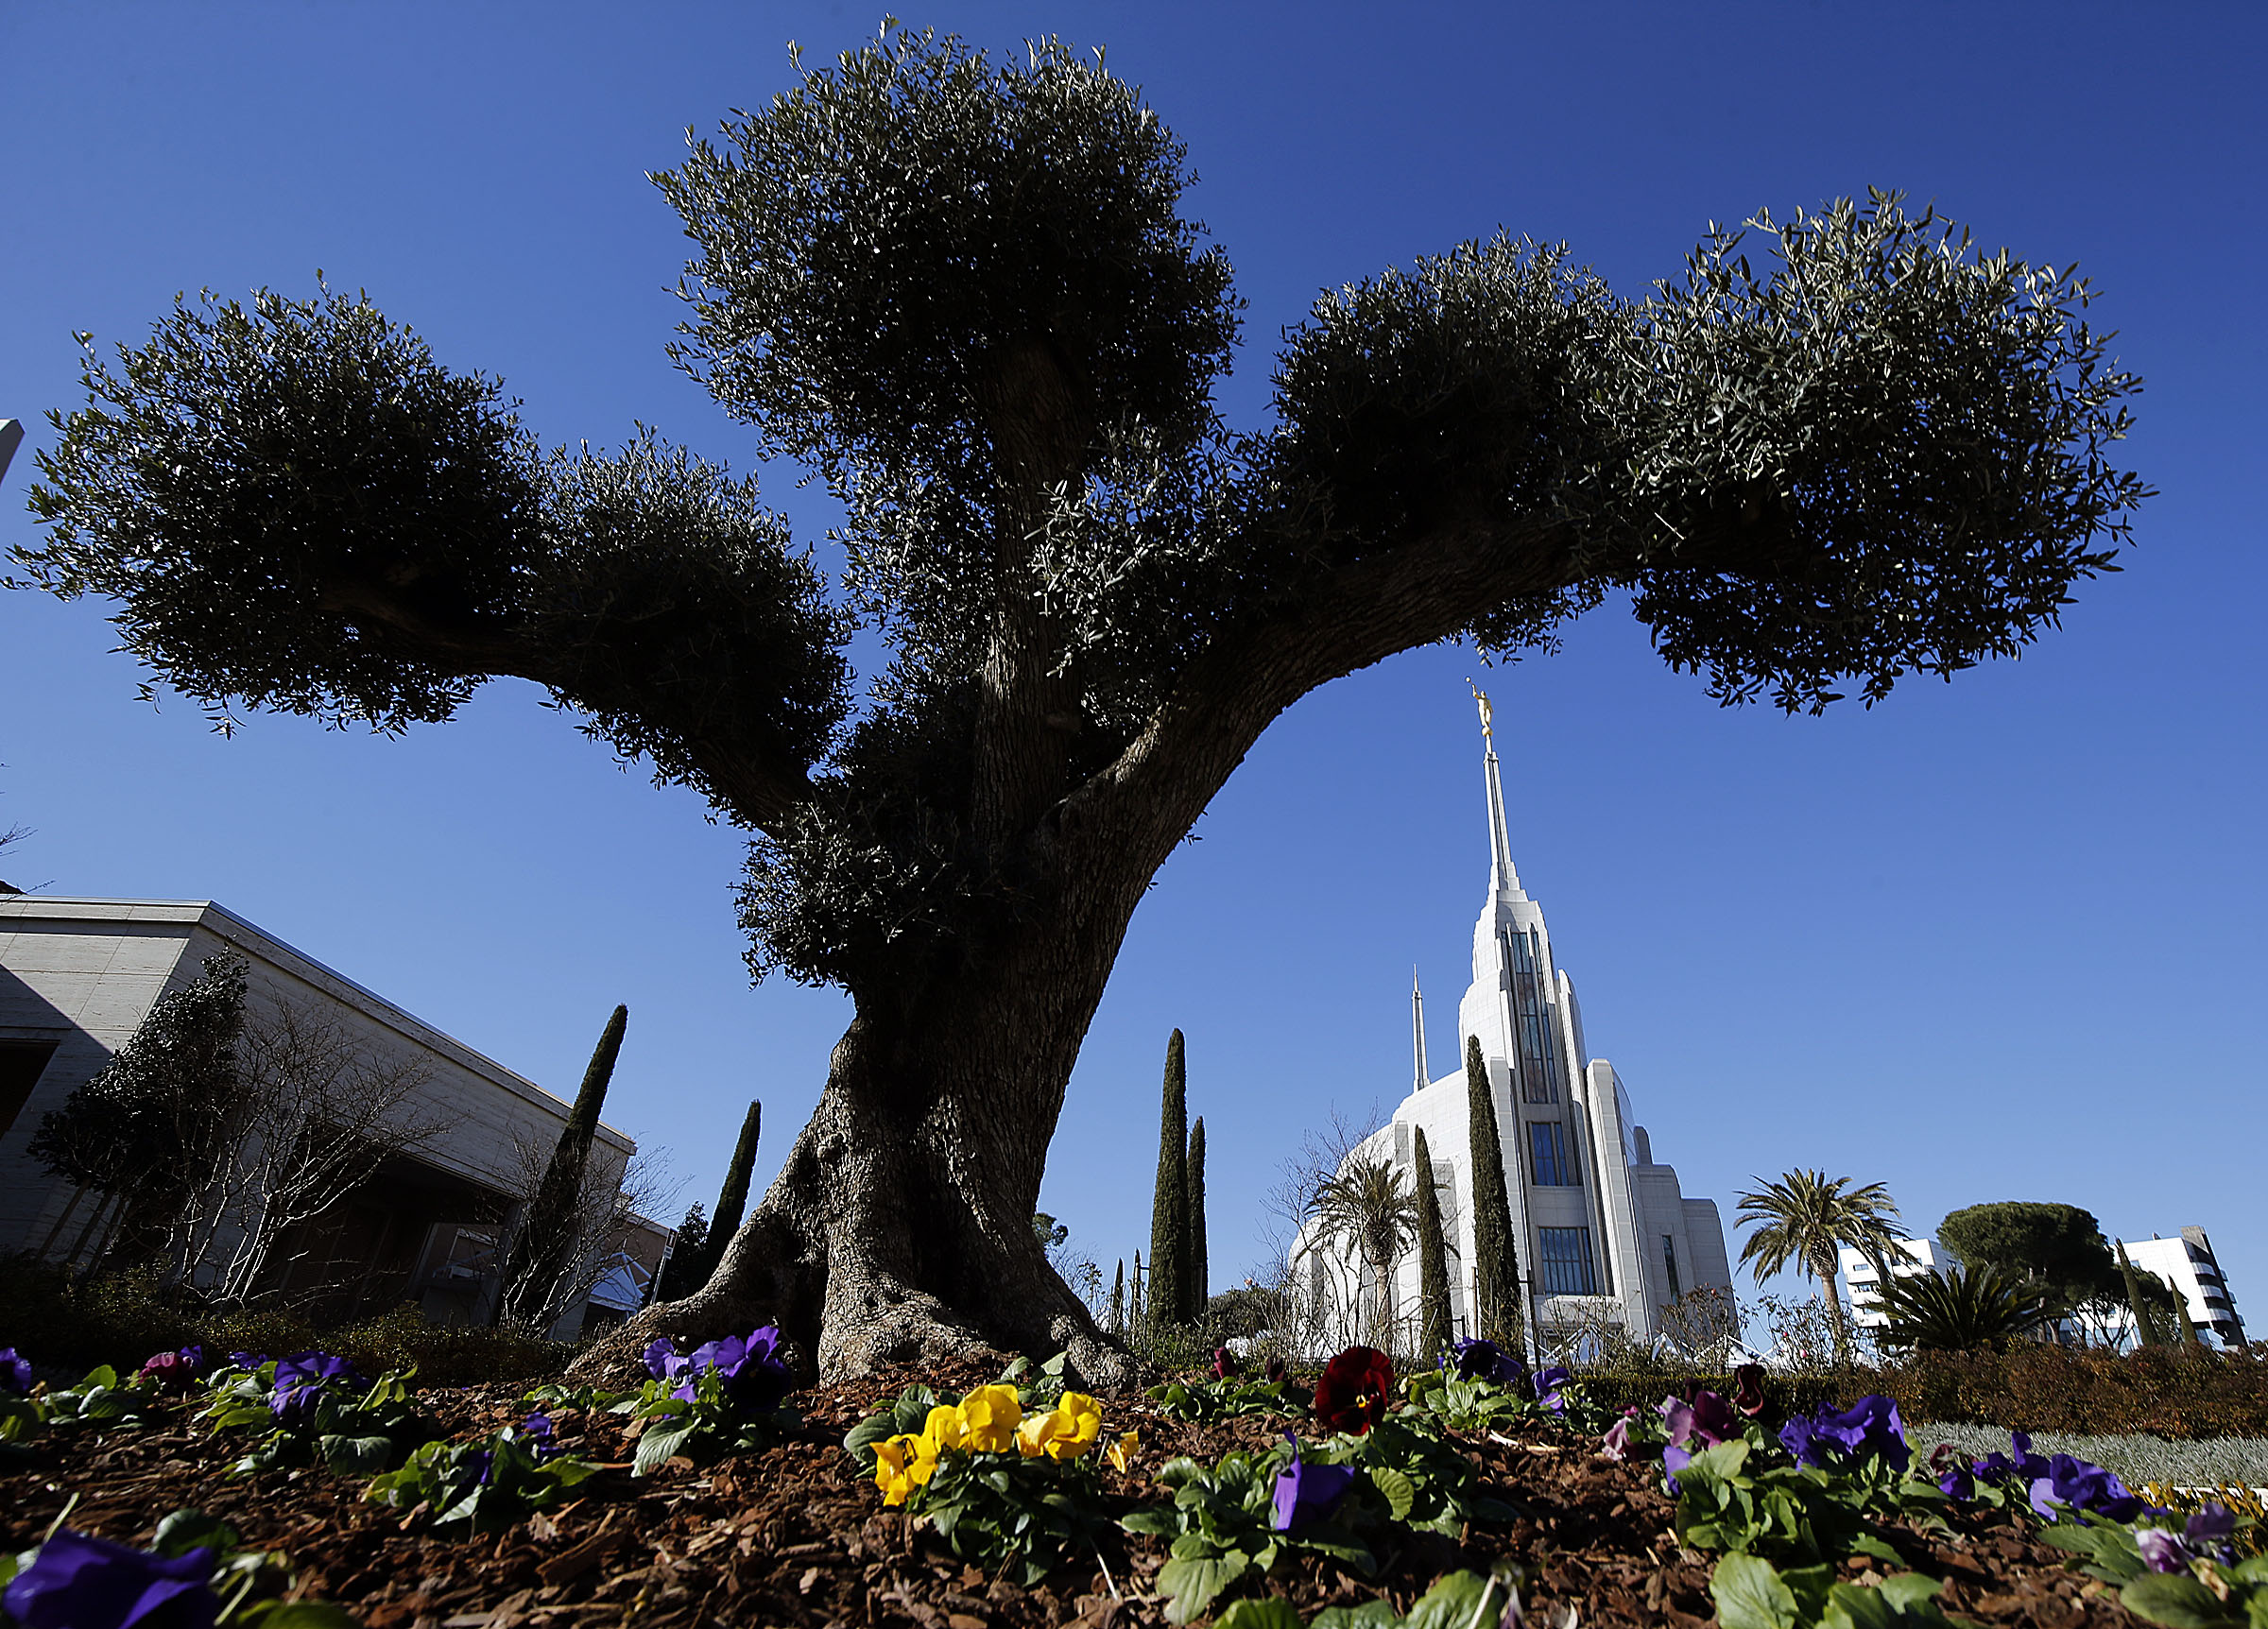 One of four trees that are 400 to 500 years old are shown on the grounds of the Rome Italy Temple of The Church of Jesus Christ of Latter-day Saints on Tuesday, Jan. 15, 2019.